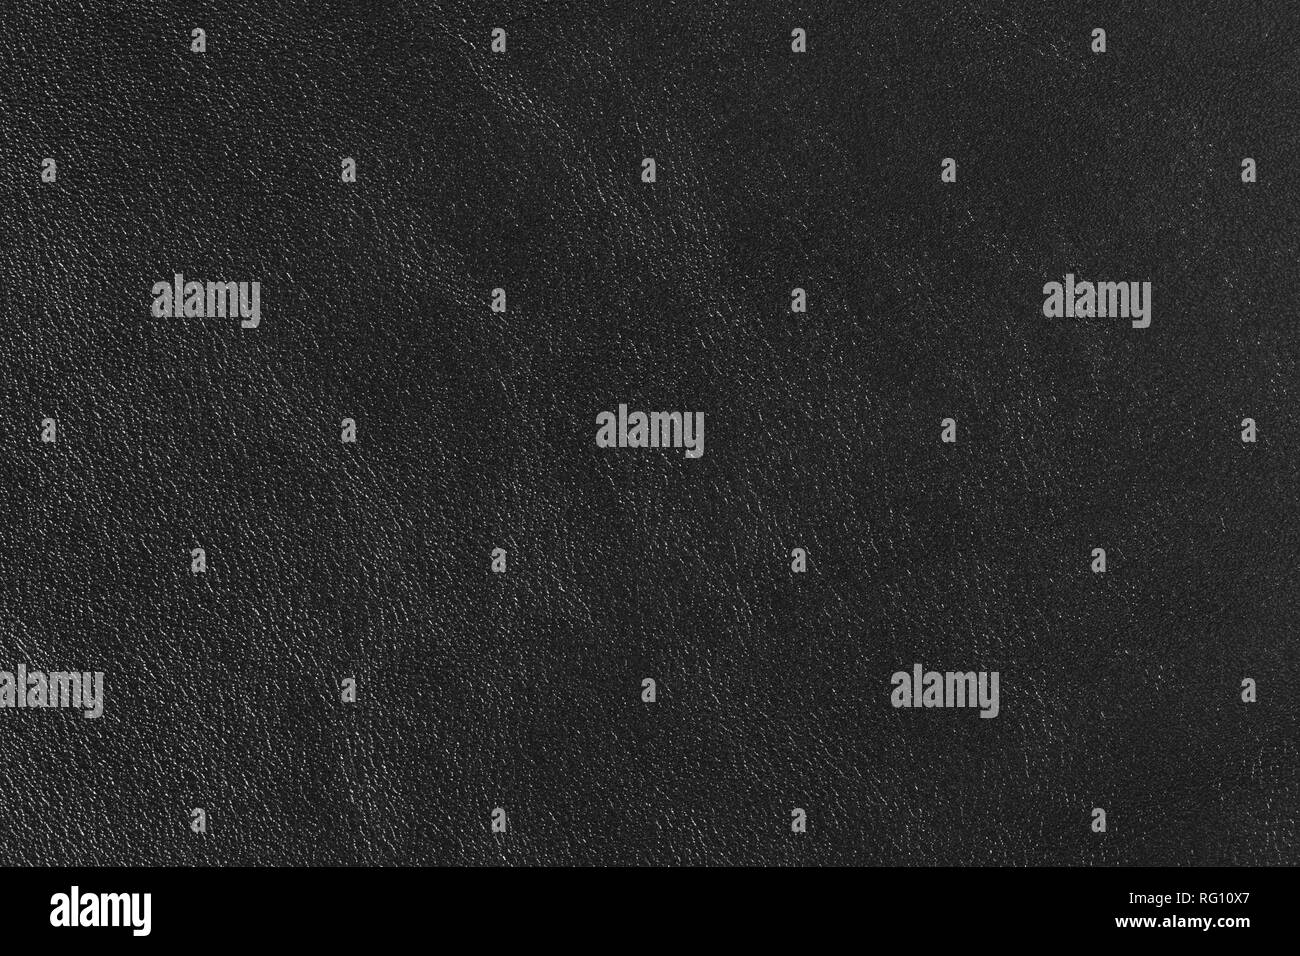 Black leather texture background for your unique project.. - Stock Image